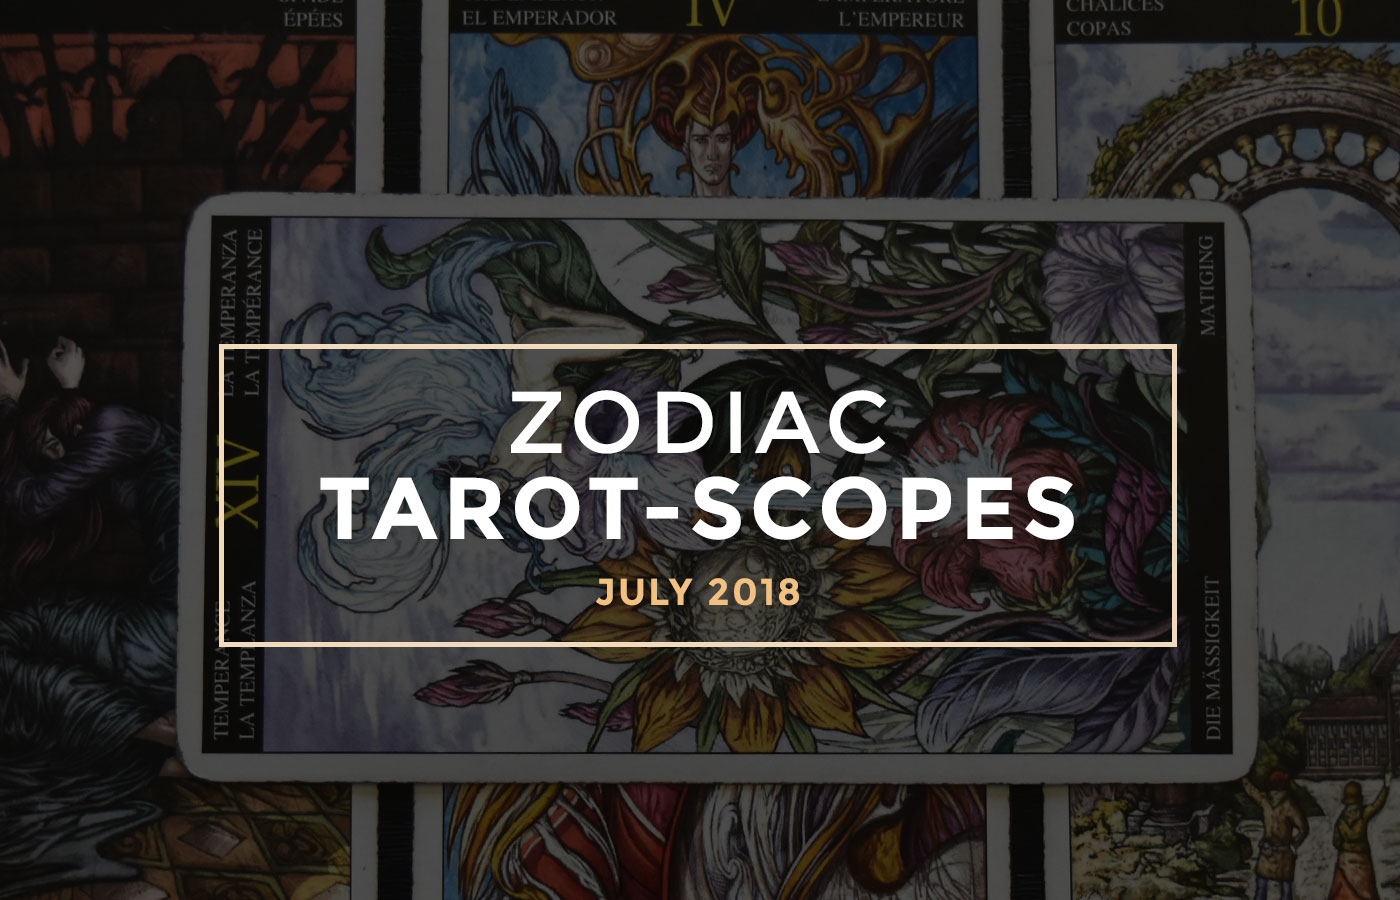 JULY 2018 ZODIAC TAROT-SCOPES BY JOAN ZODIANZ